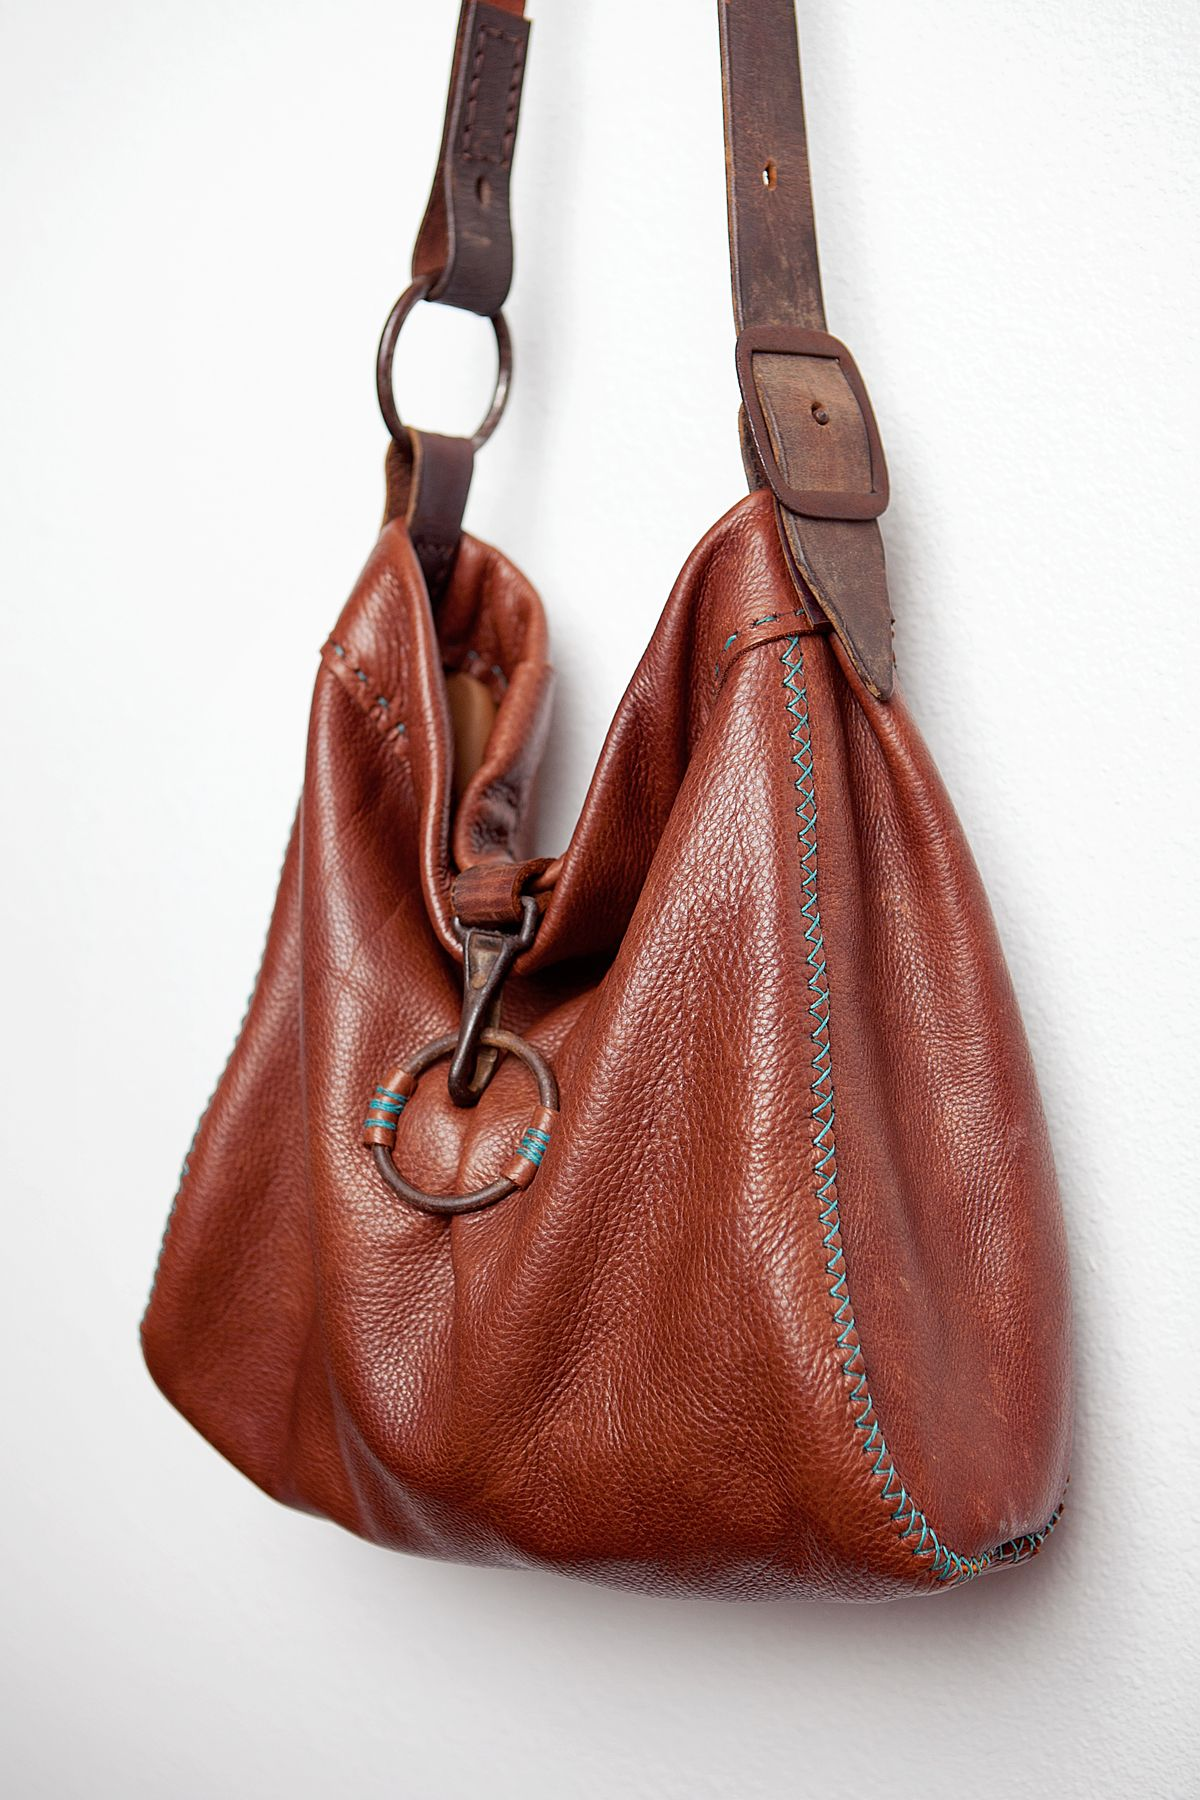 Cibado Leather Bags Soft Supple And Thick Brown Is Carefully Hand Sewn With The Cross Sch On Gussets Entirely Waxed Thread